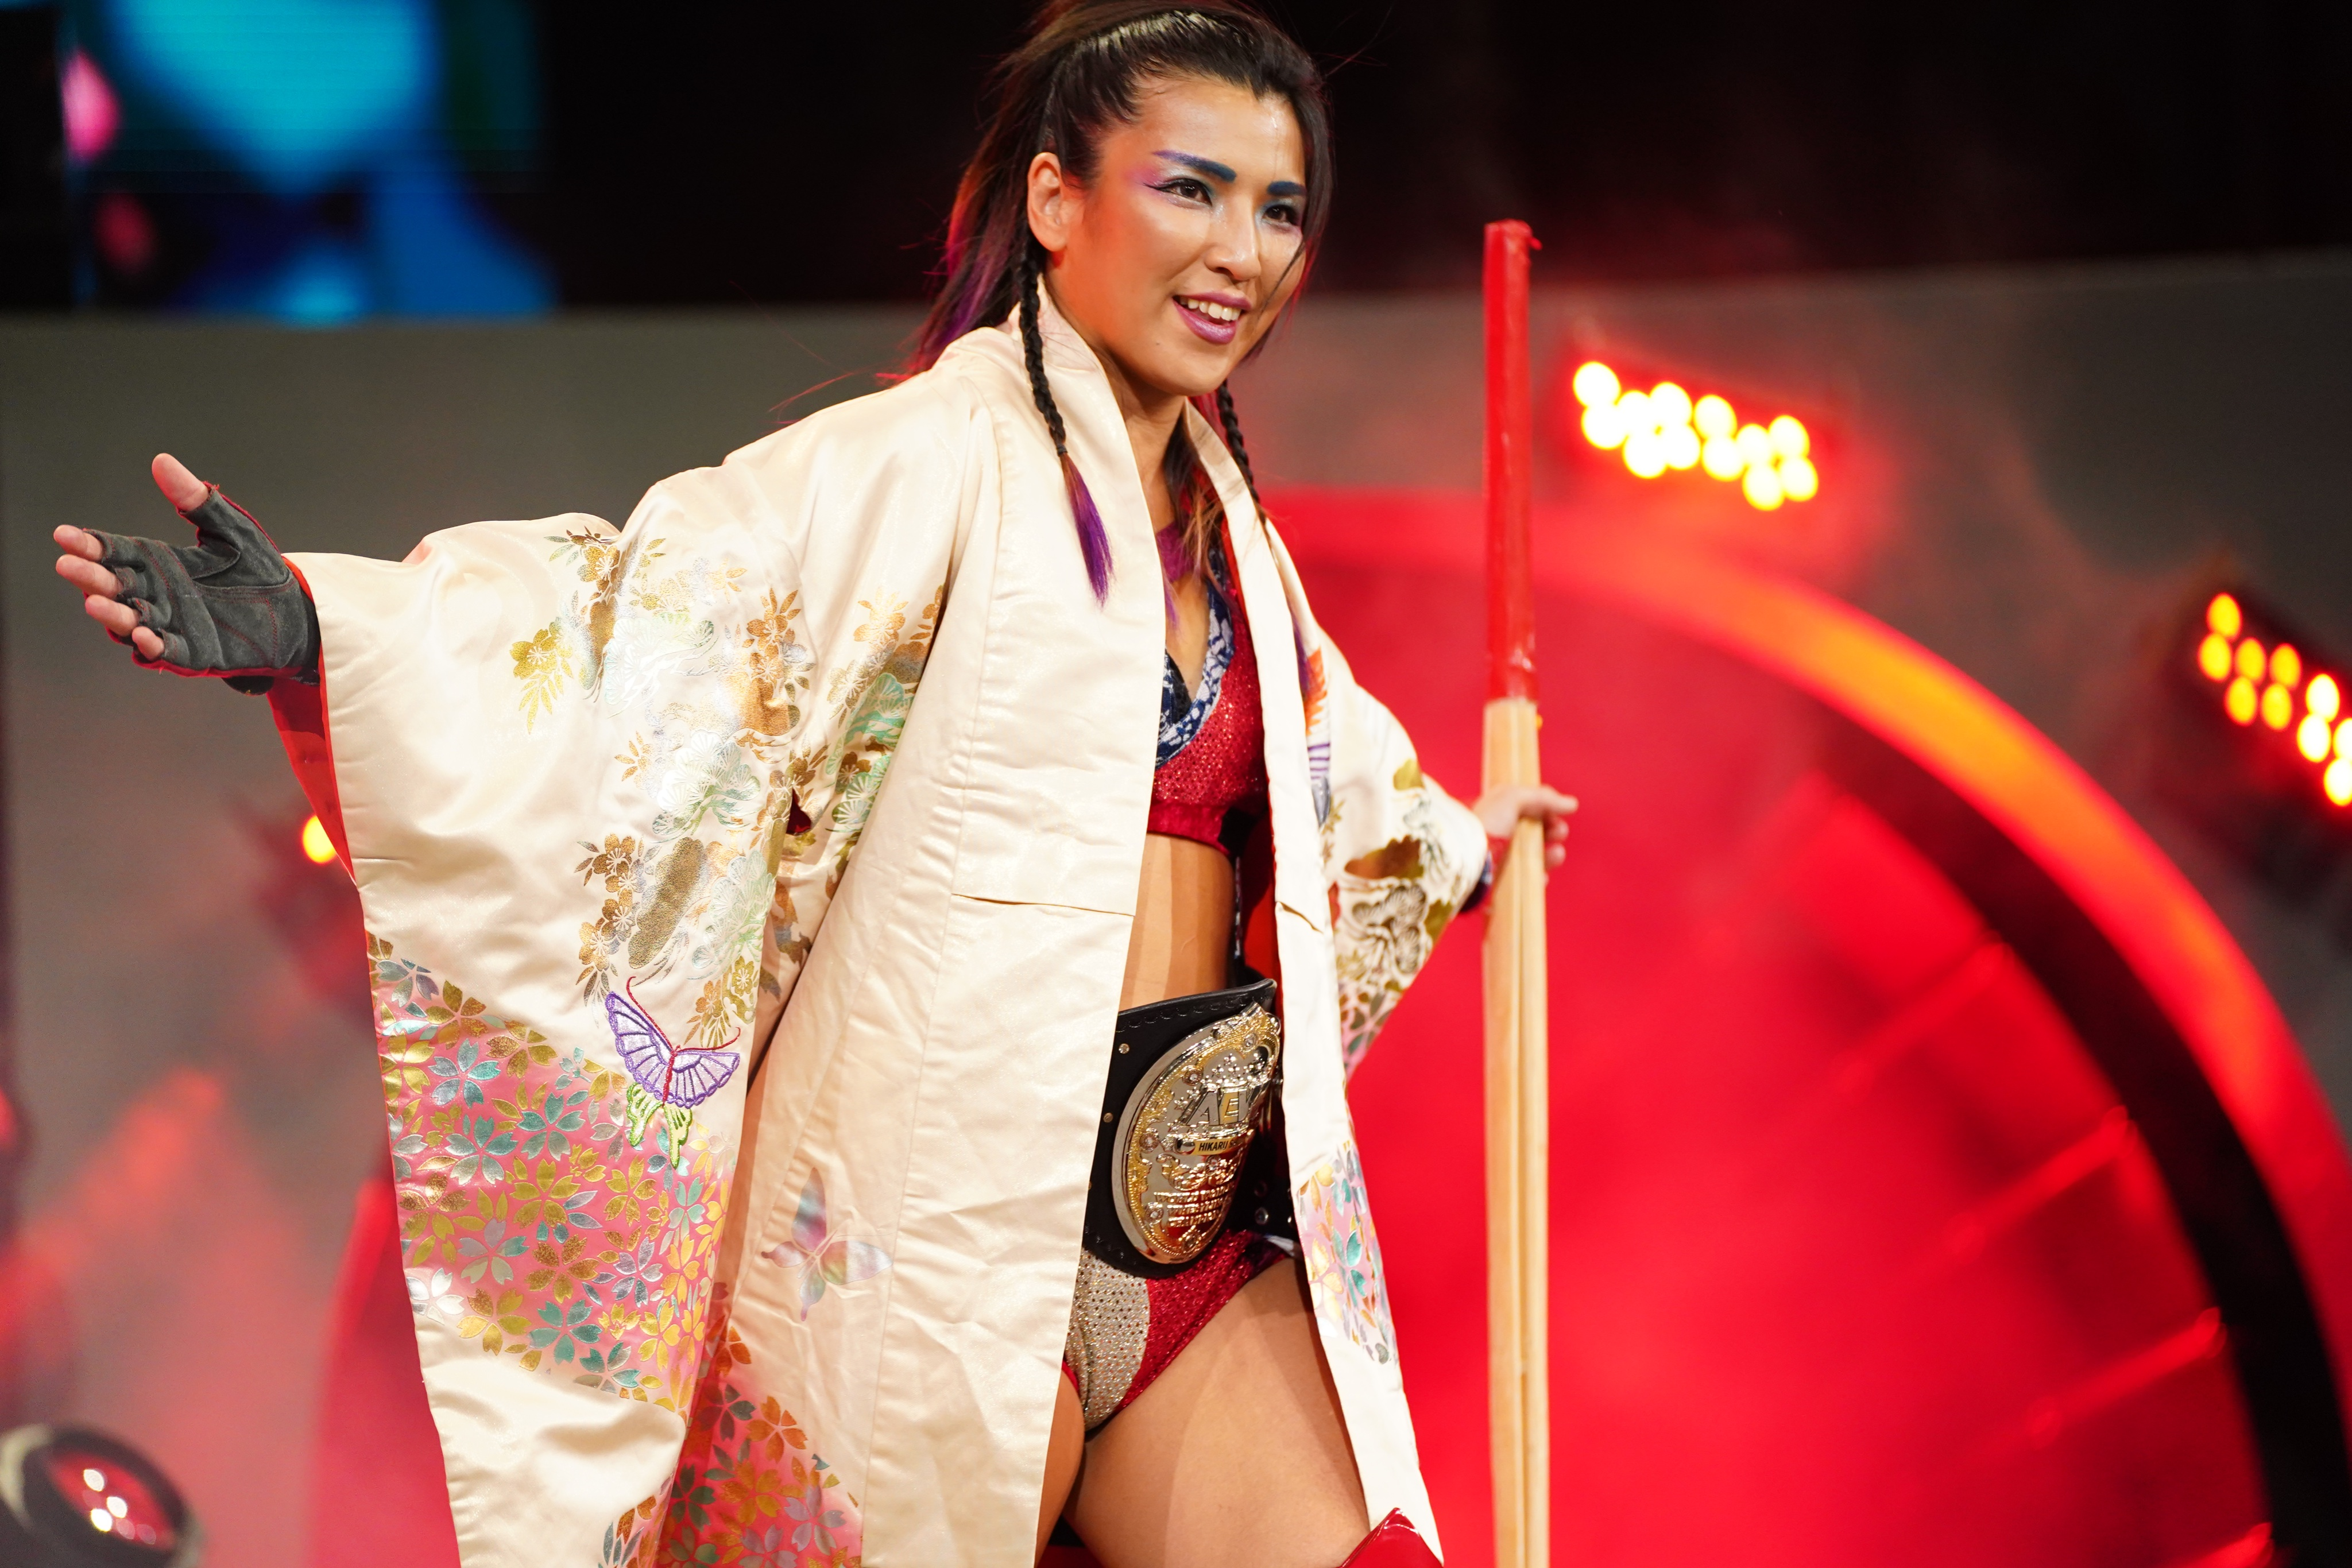 Hikaru Shida fought with Tay Conti on this week's AEW Dynamite for the women's title.